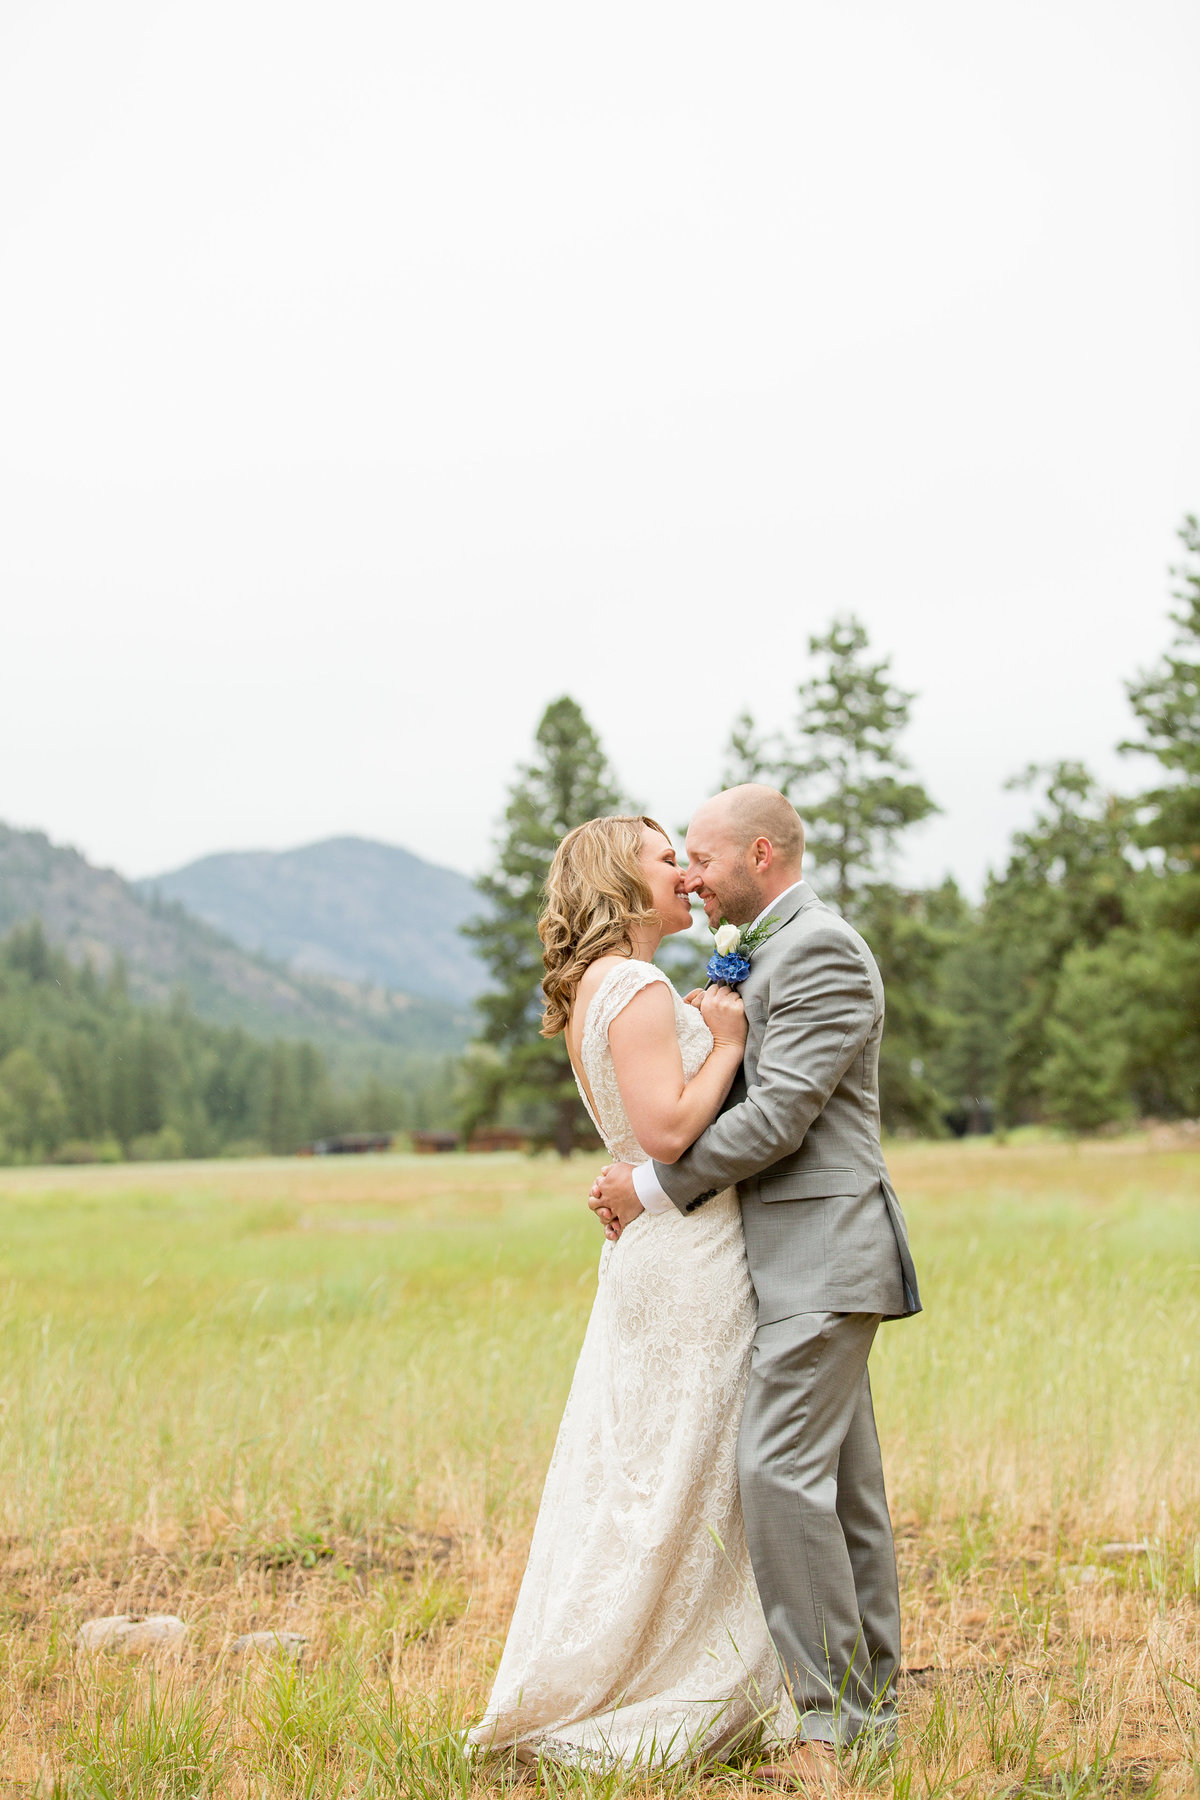 Jon + Emilee | Lifesong Photography | Whitworth University Destination Wedding (161 of 254)